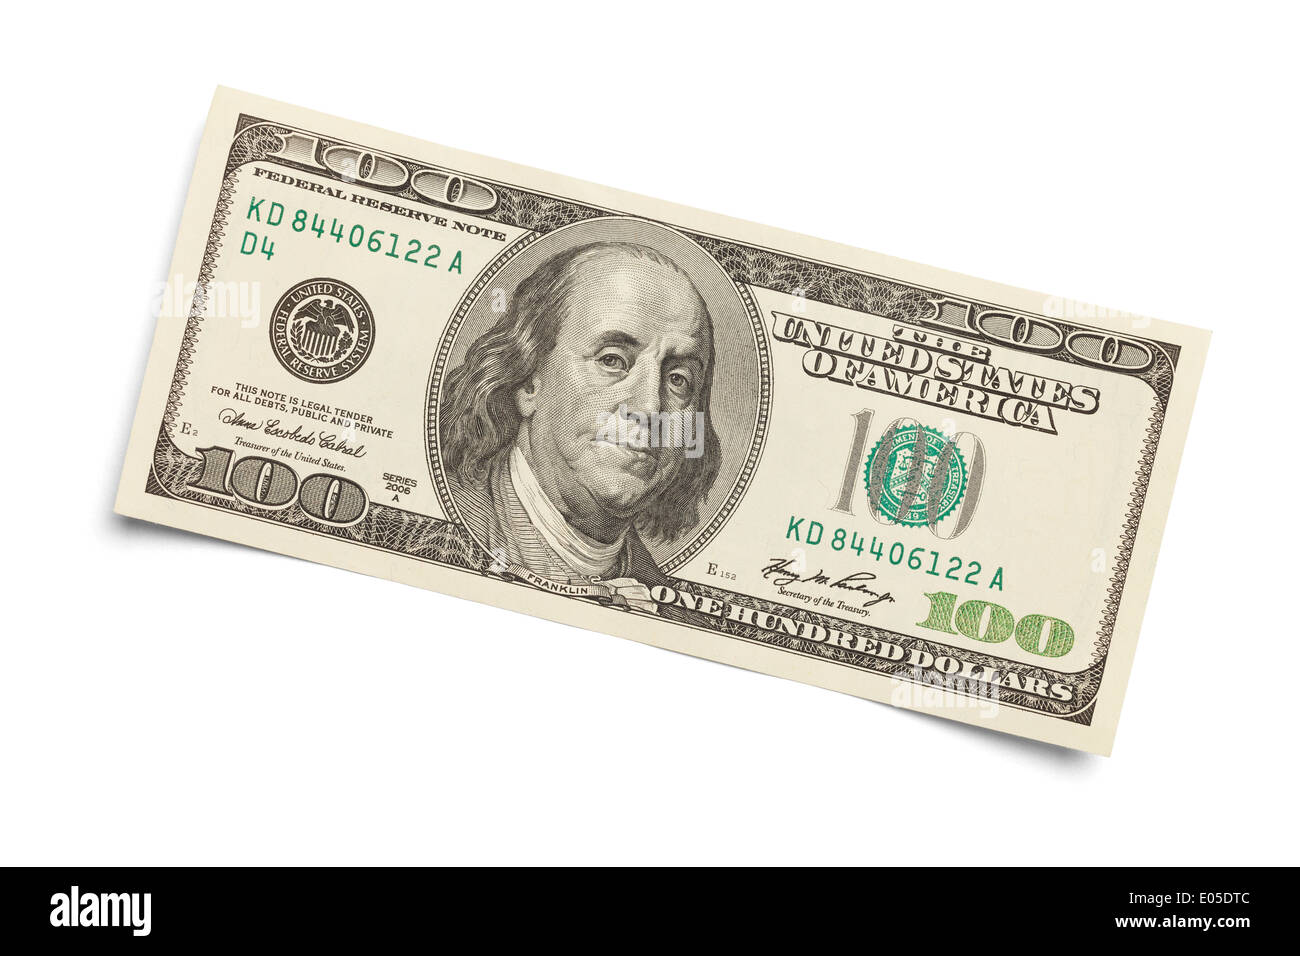 100 dollar bill Isolated on a white background. - Stock Image